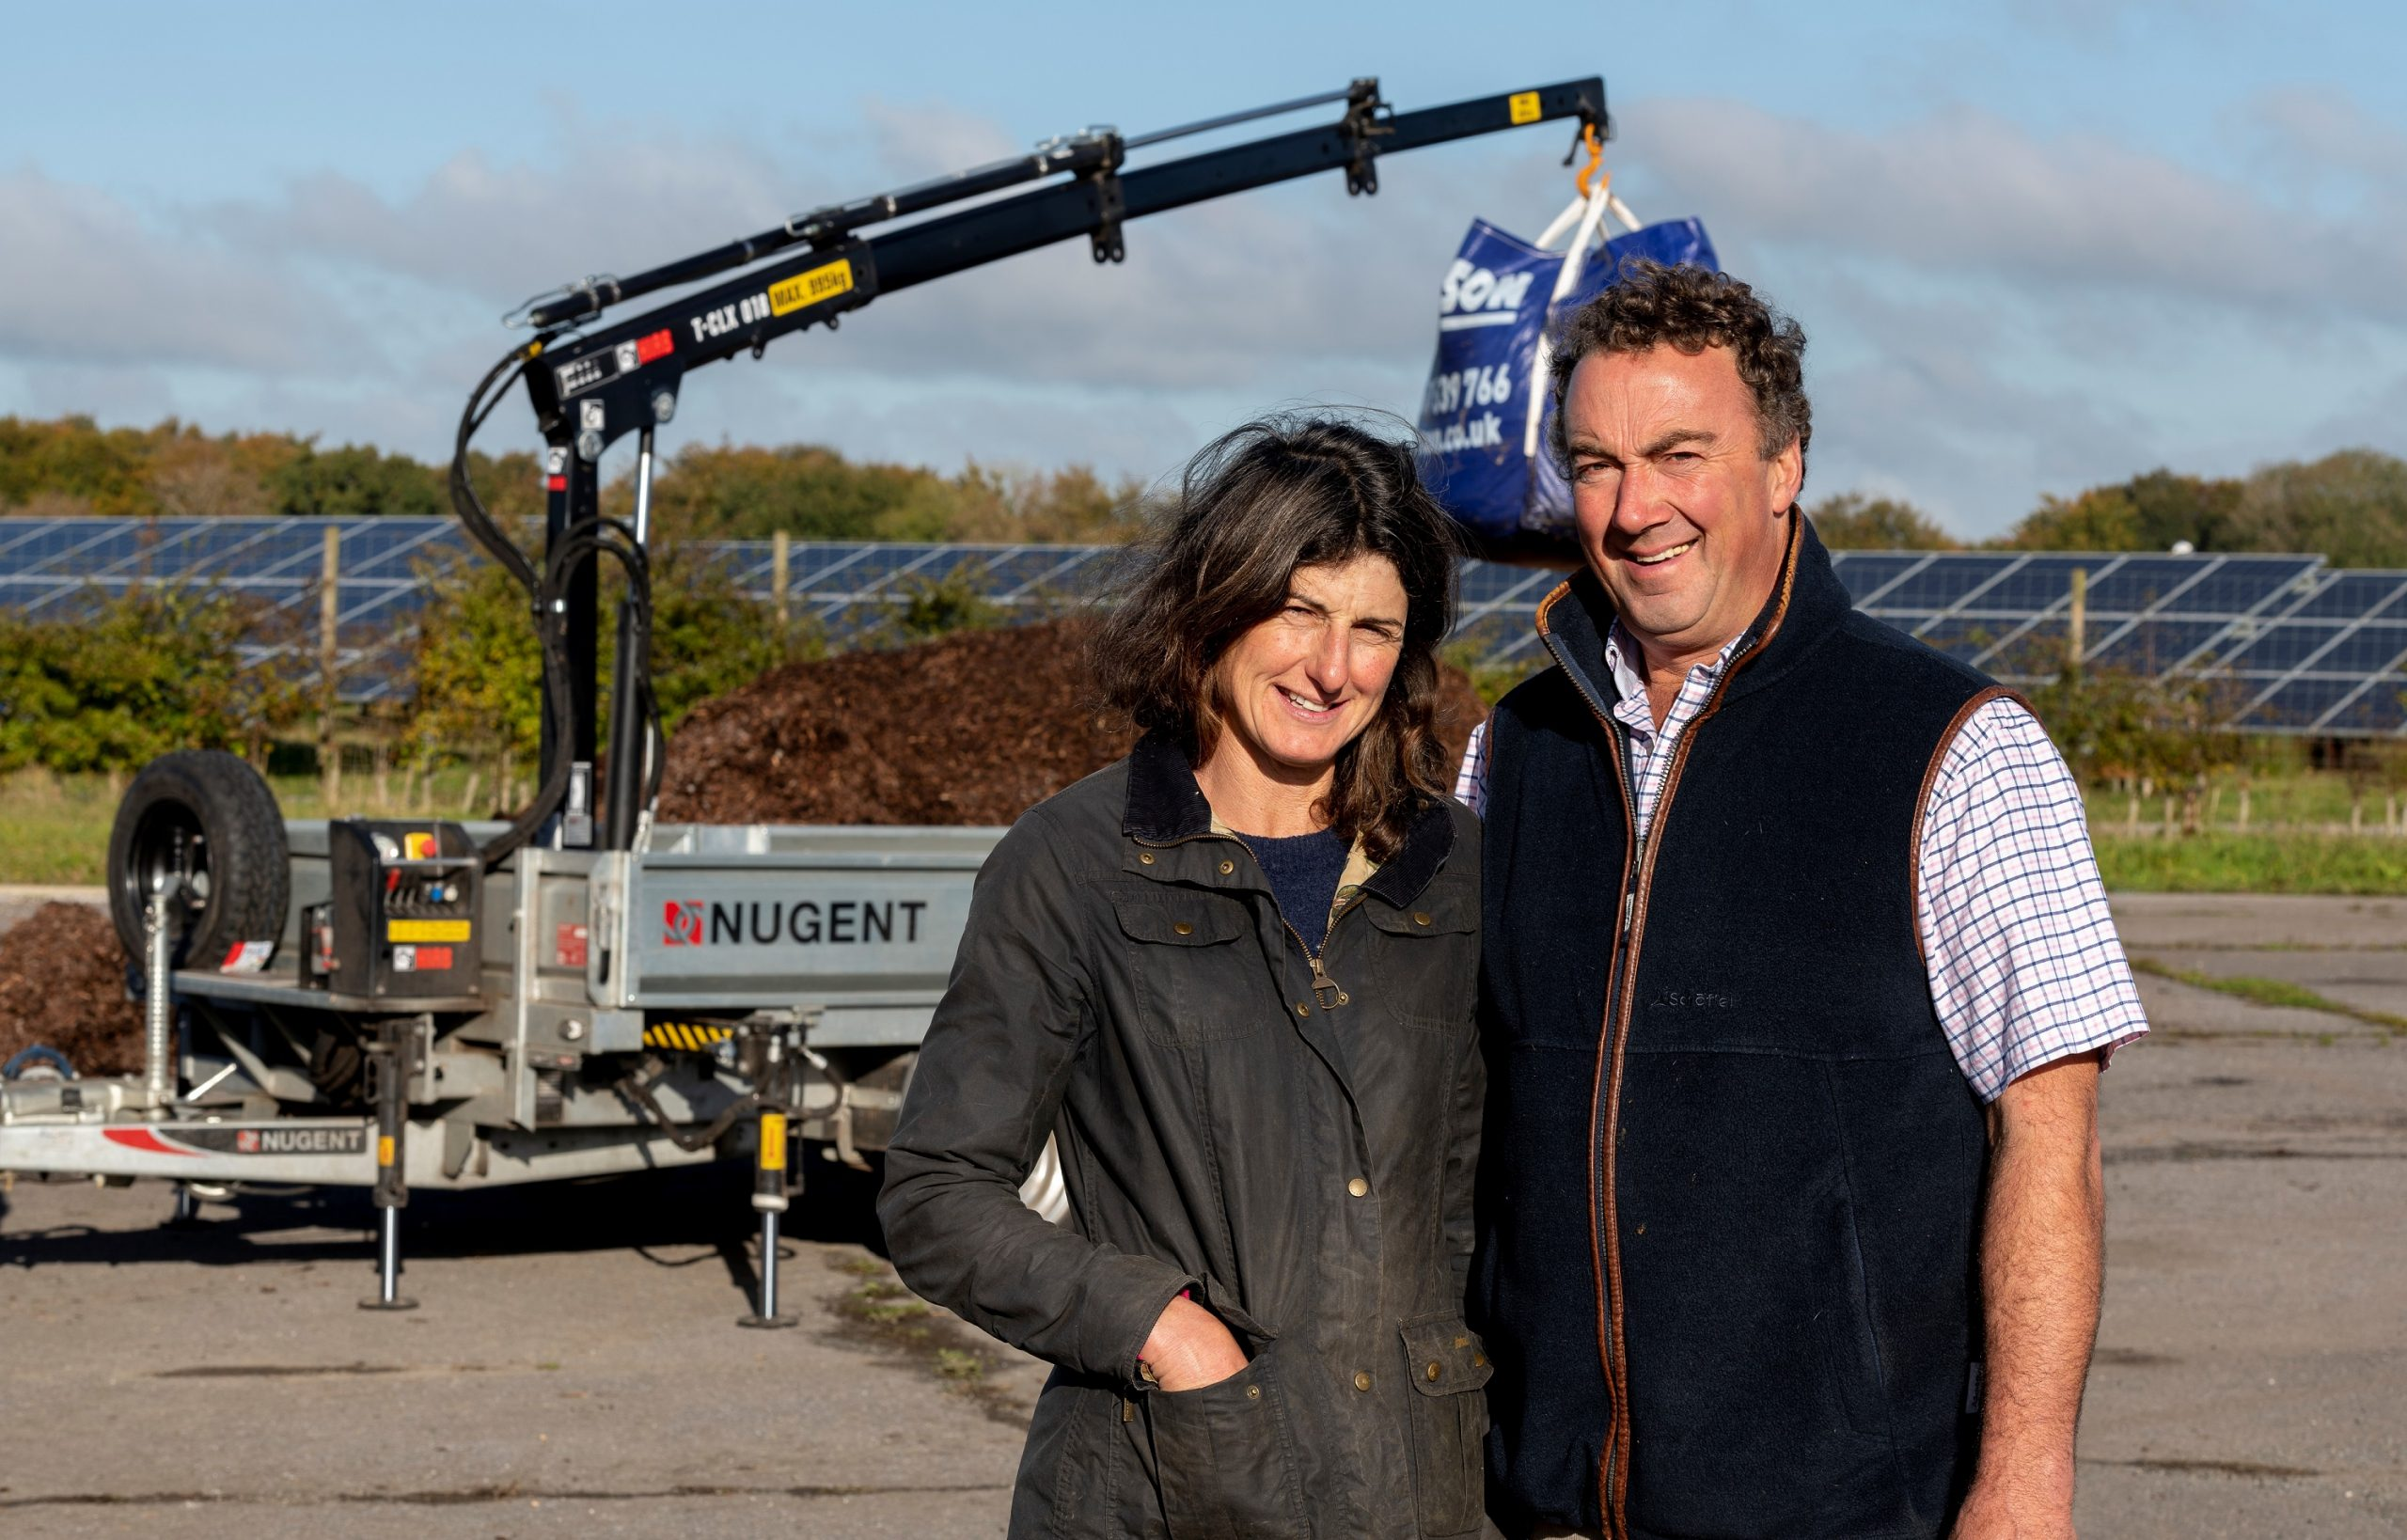 Agri Business Booming Thanks to Crane Trailer